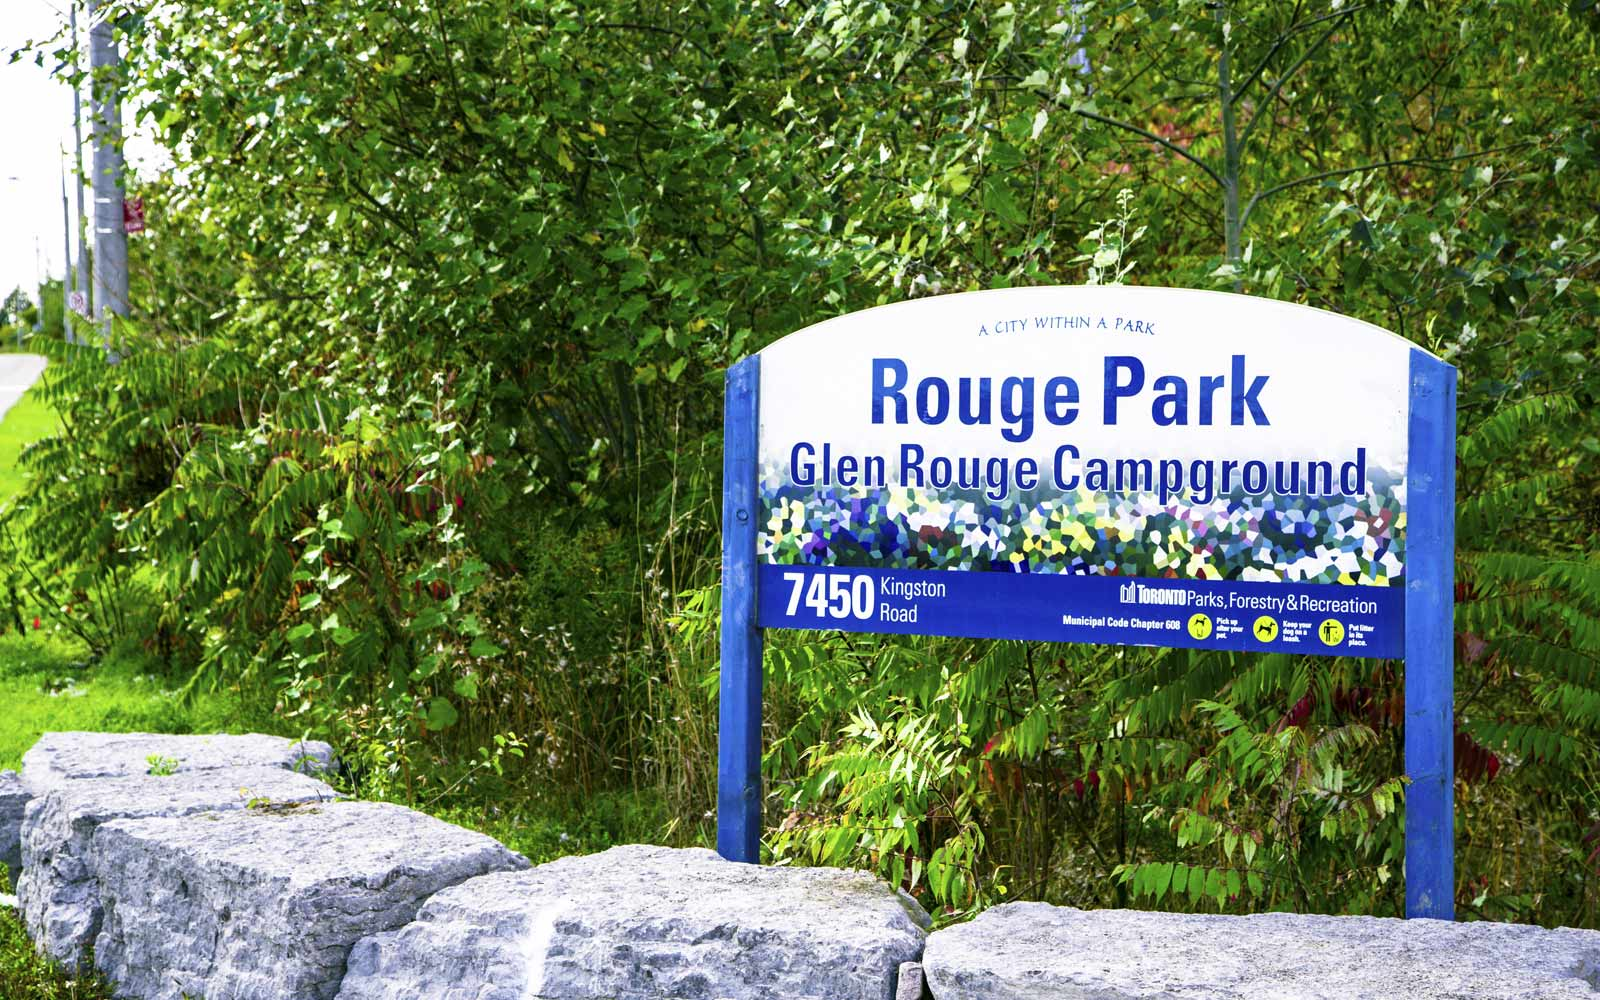 Rouge Park Sign Surrounded by Foliage in Pickering, ON